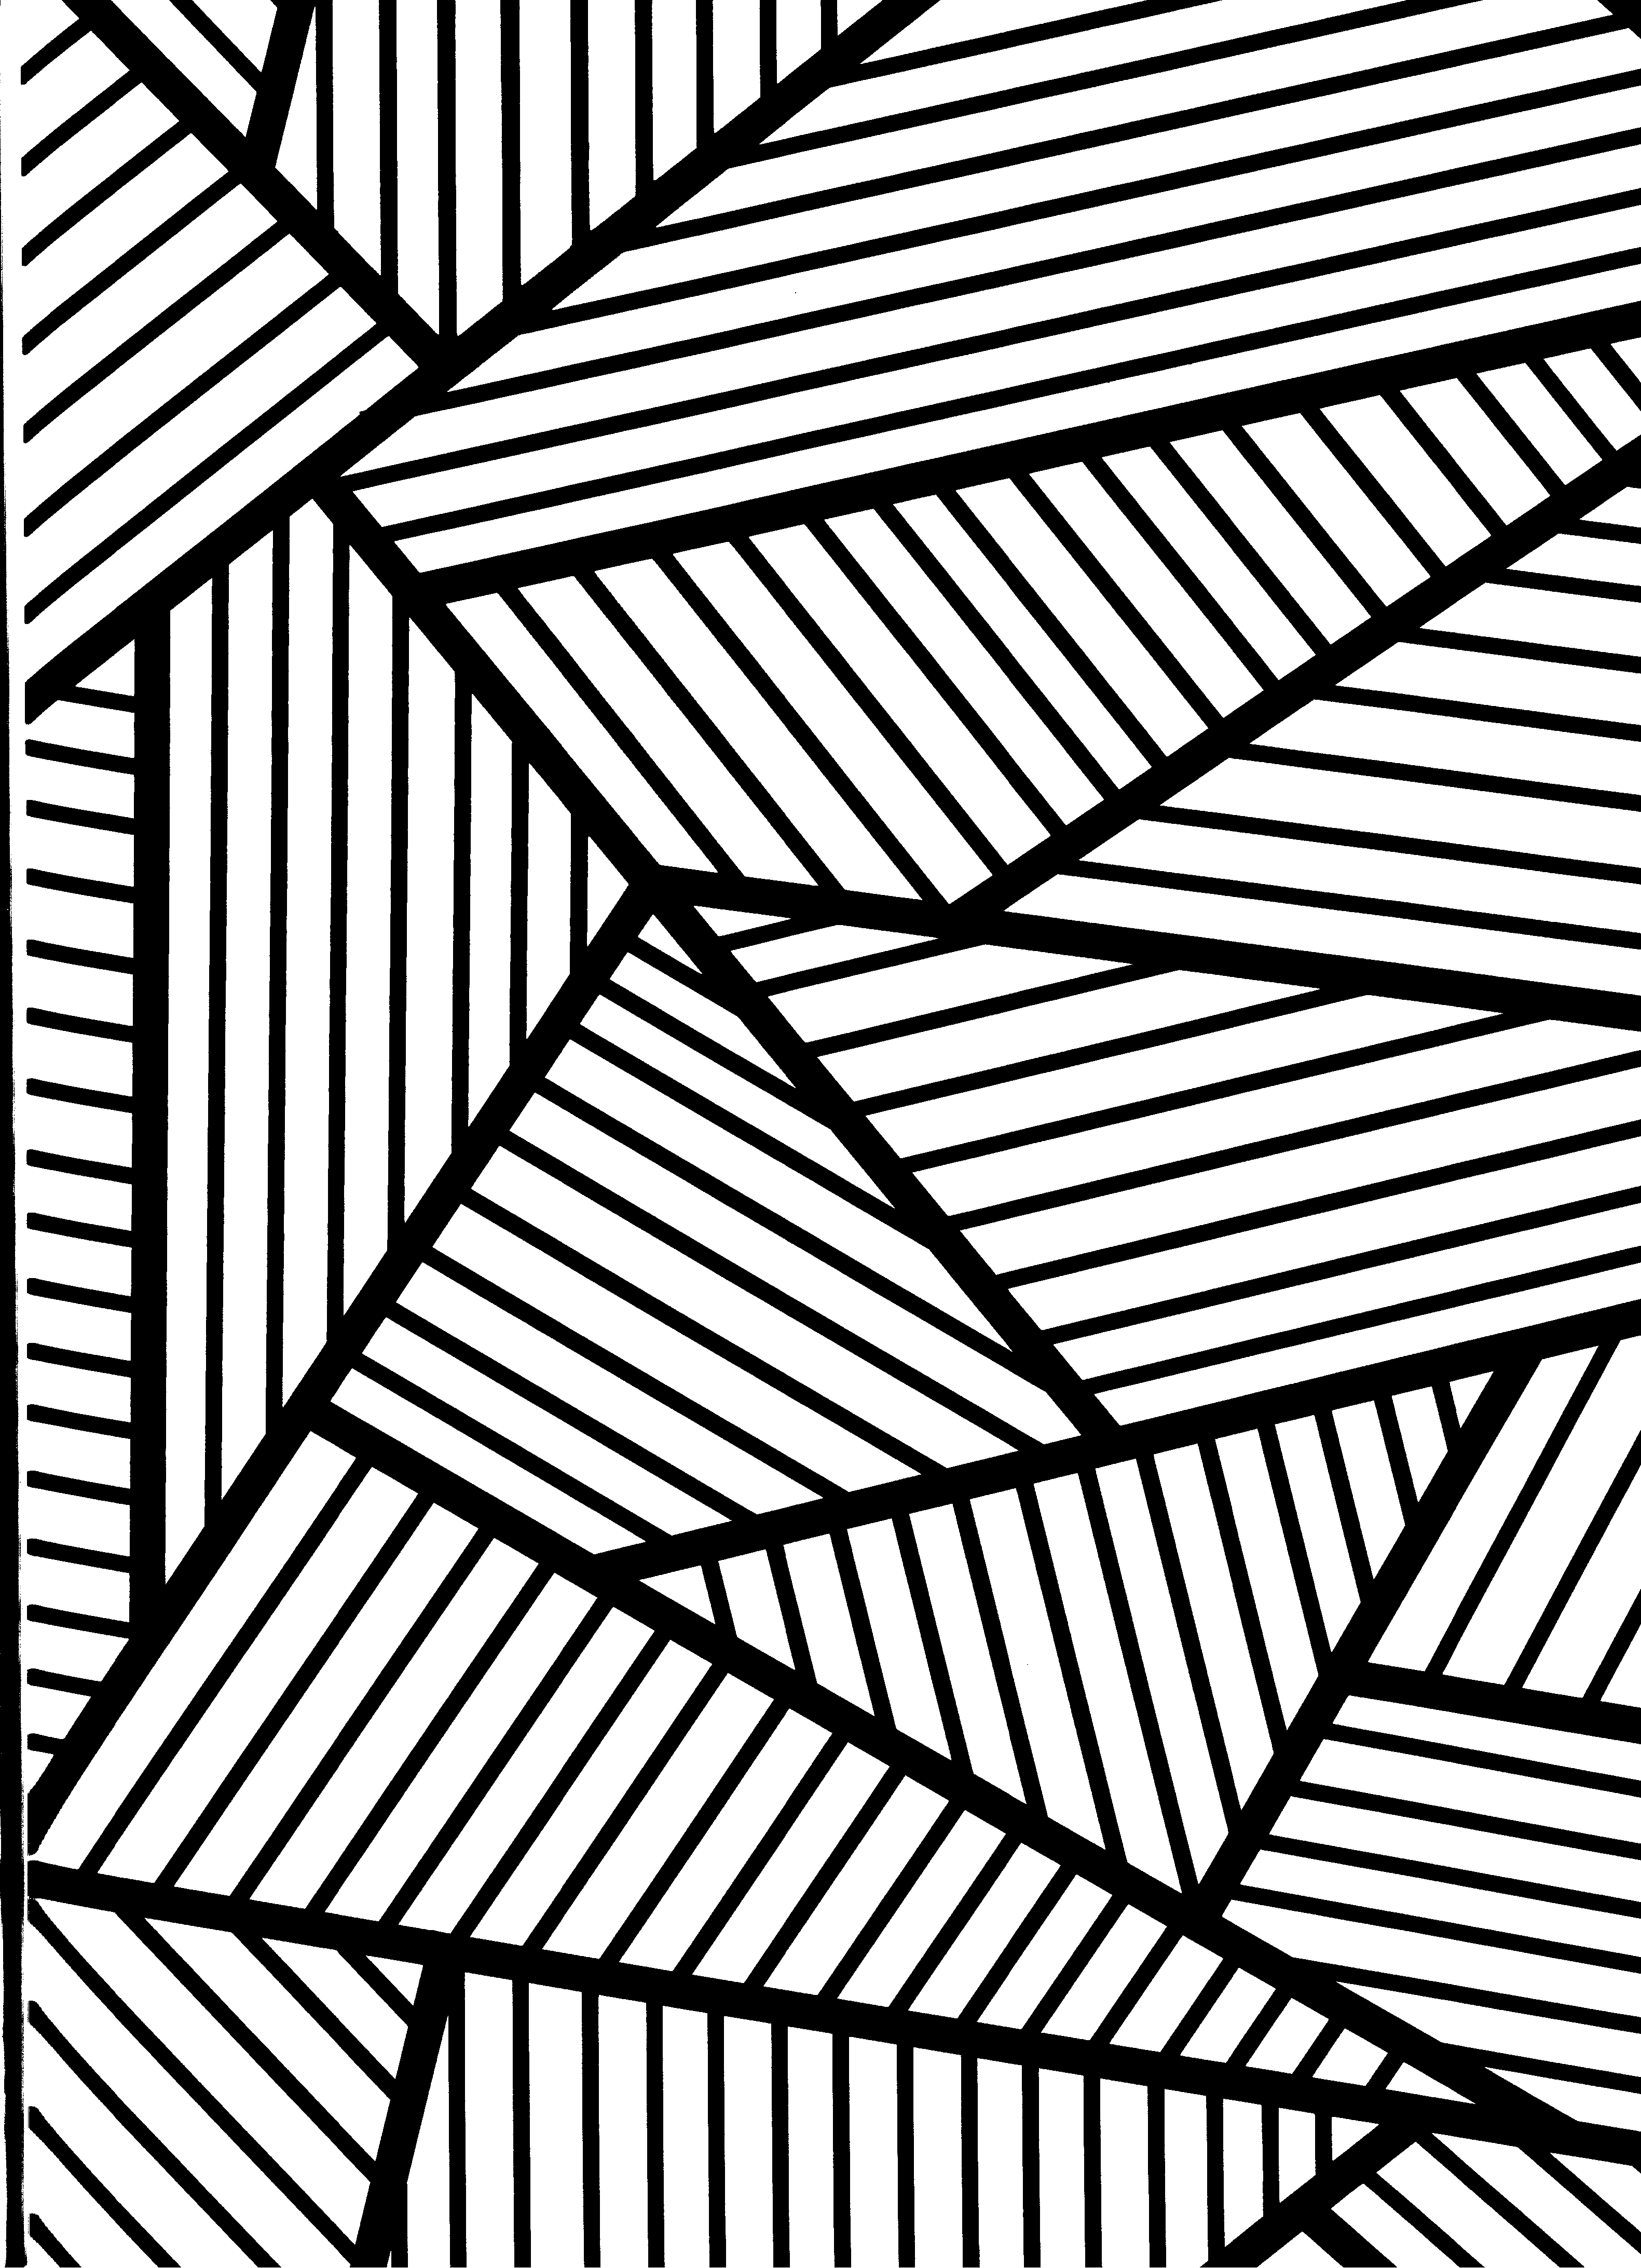 Related image Pattern coloring pages, Black white